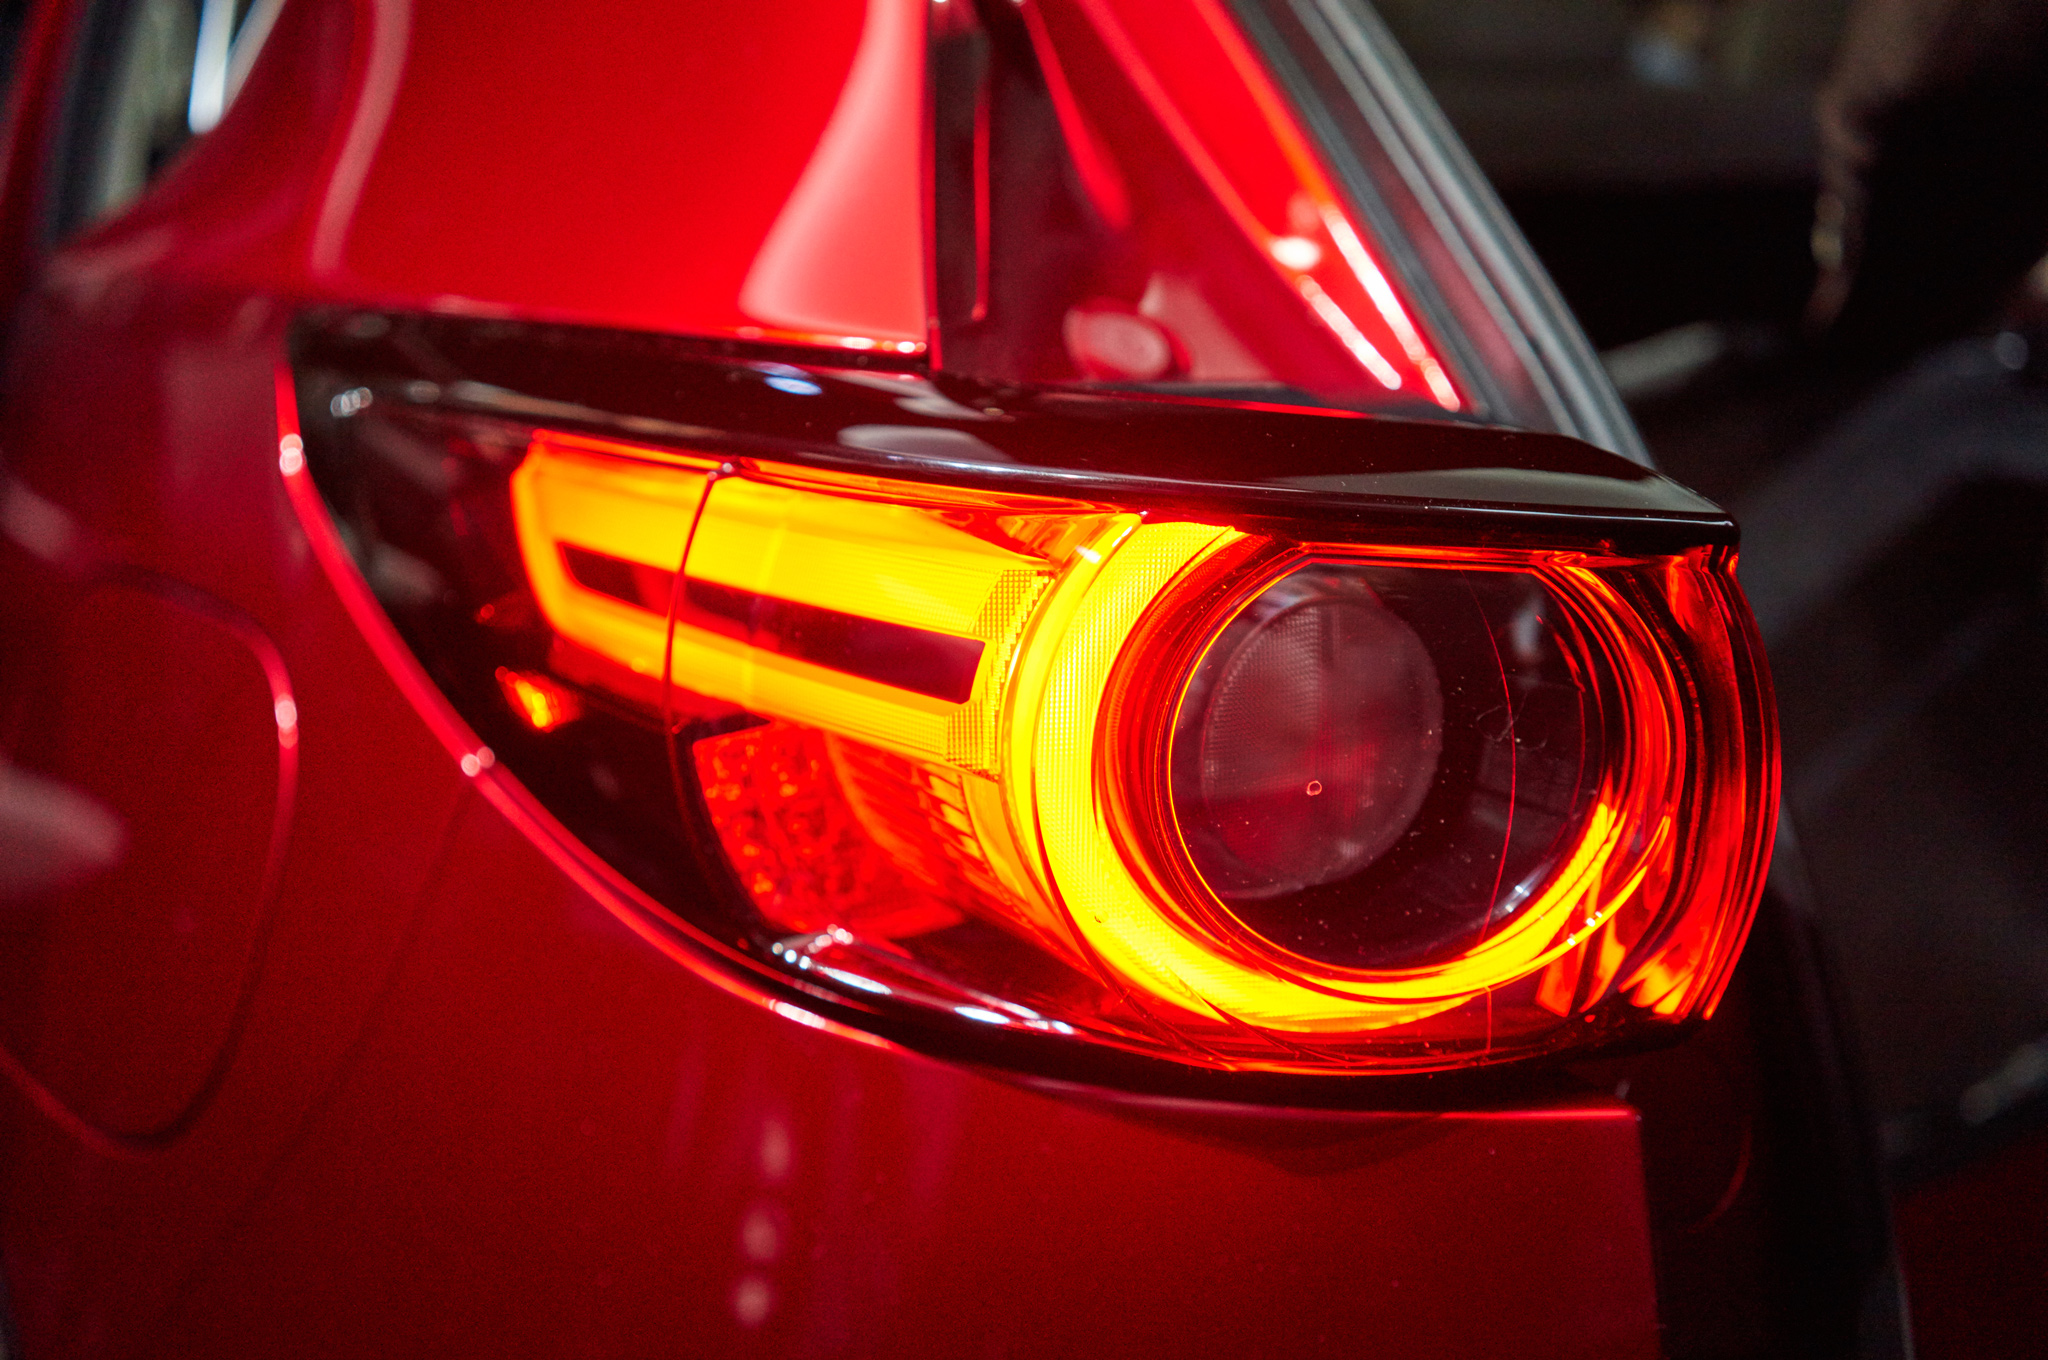 2017-mazda-cx-5-taillight-closeup-1